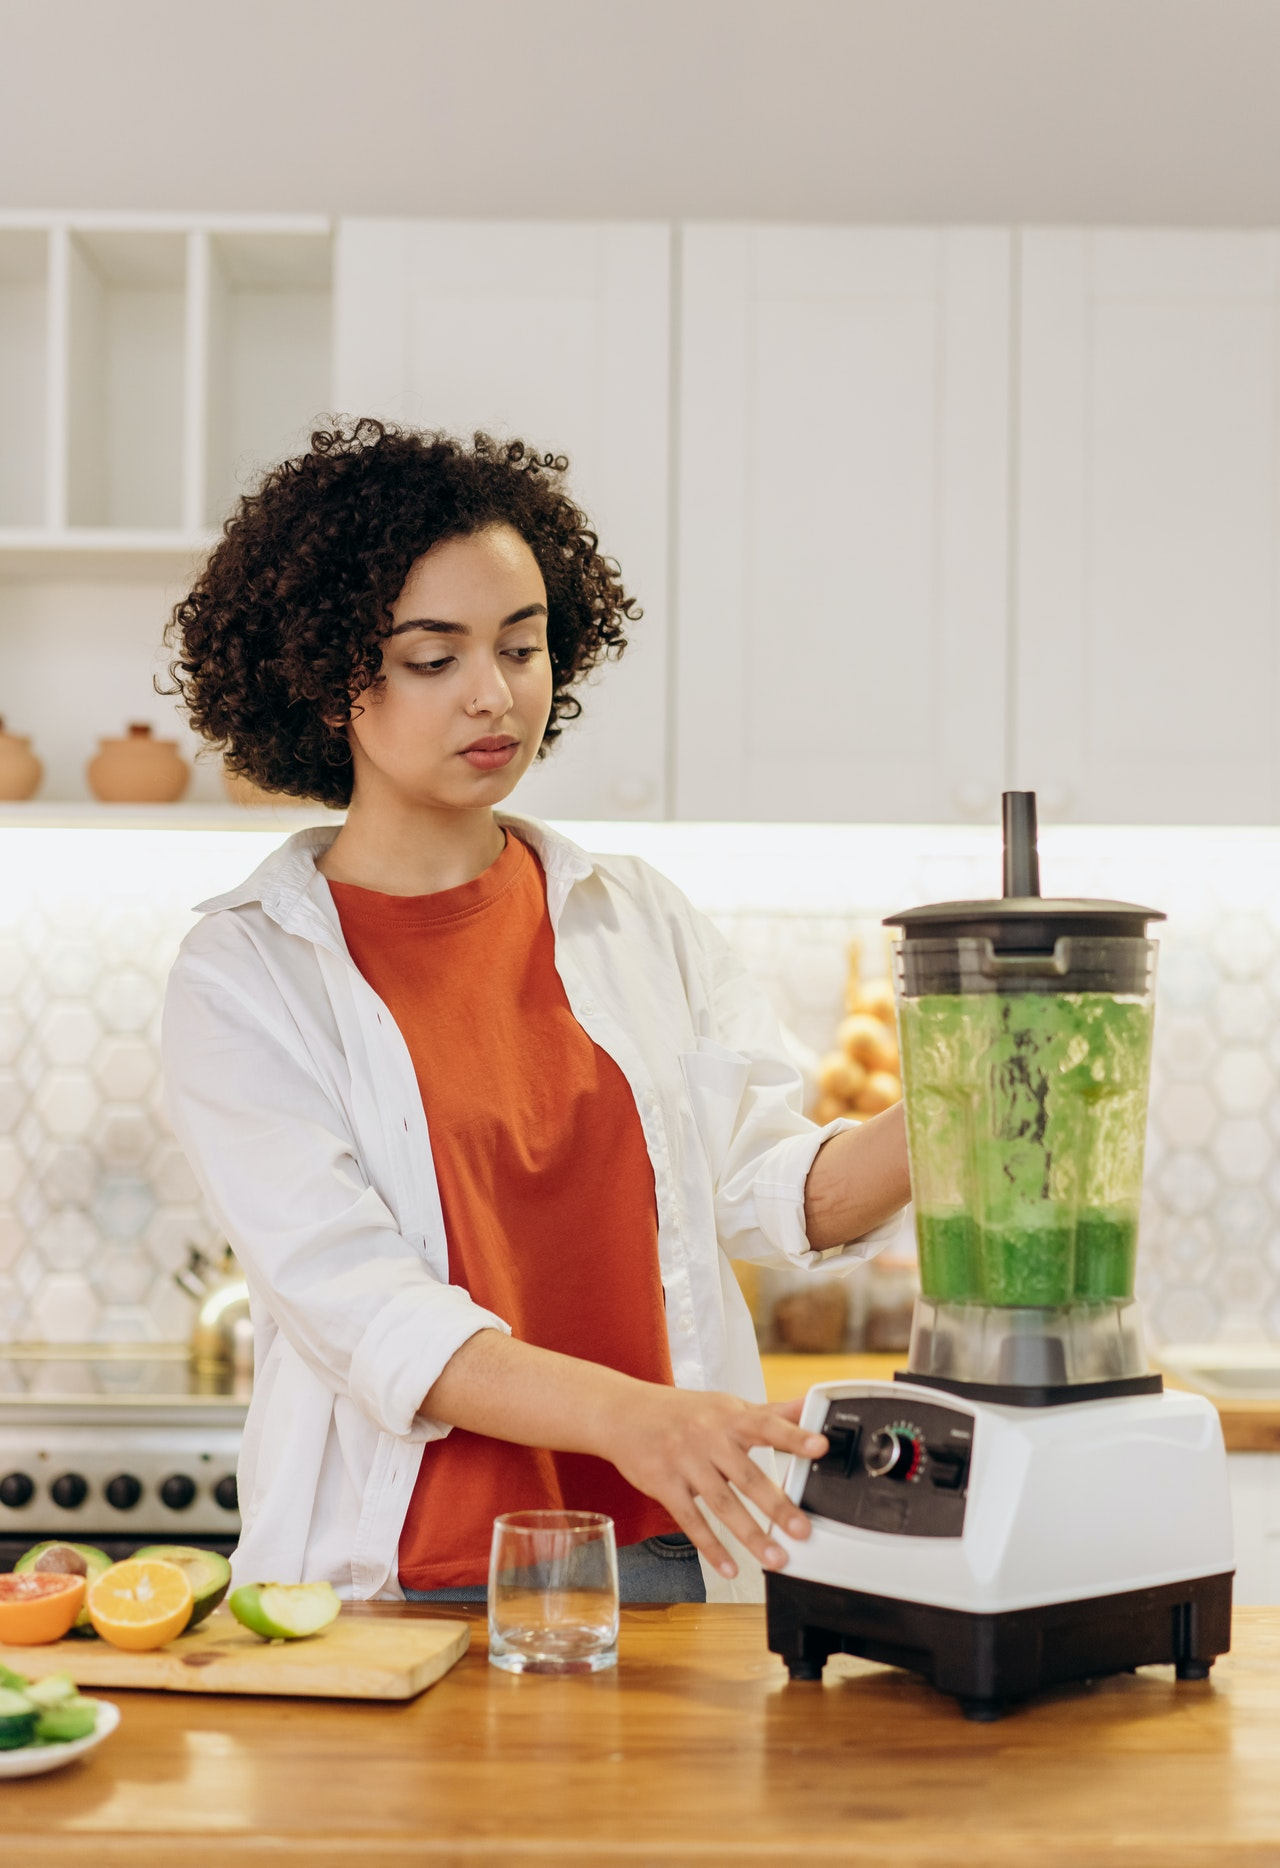 Lady making a green smoothie in a blender in her kitchen